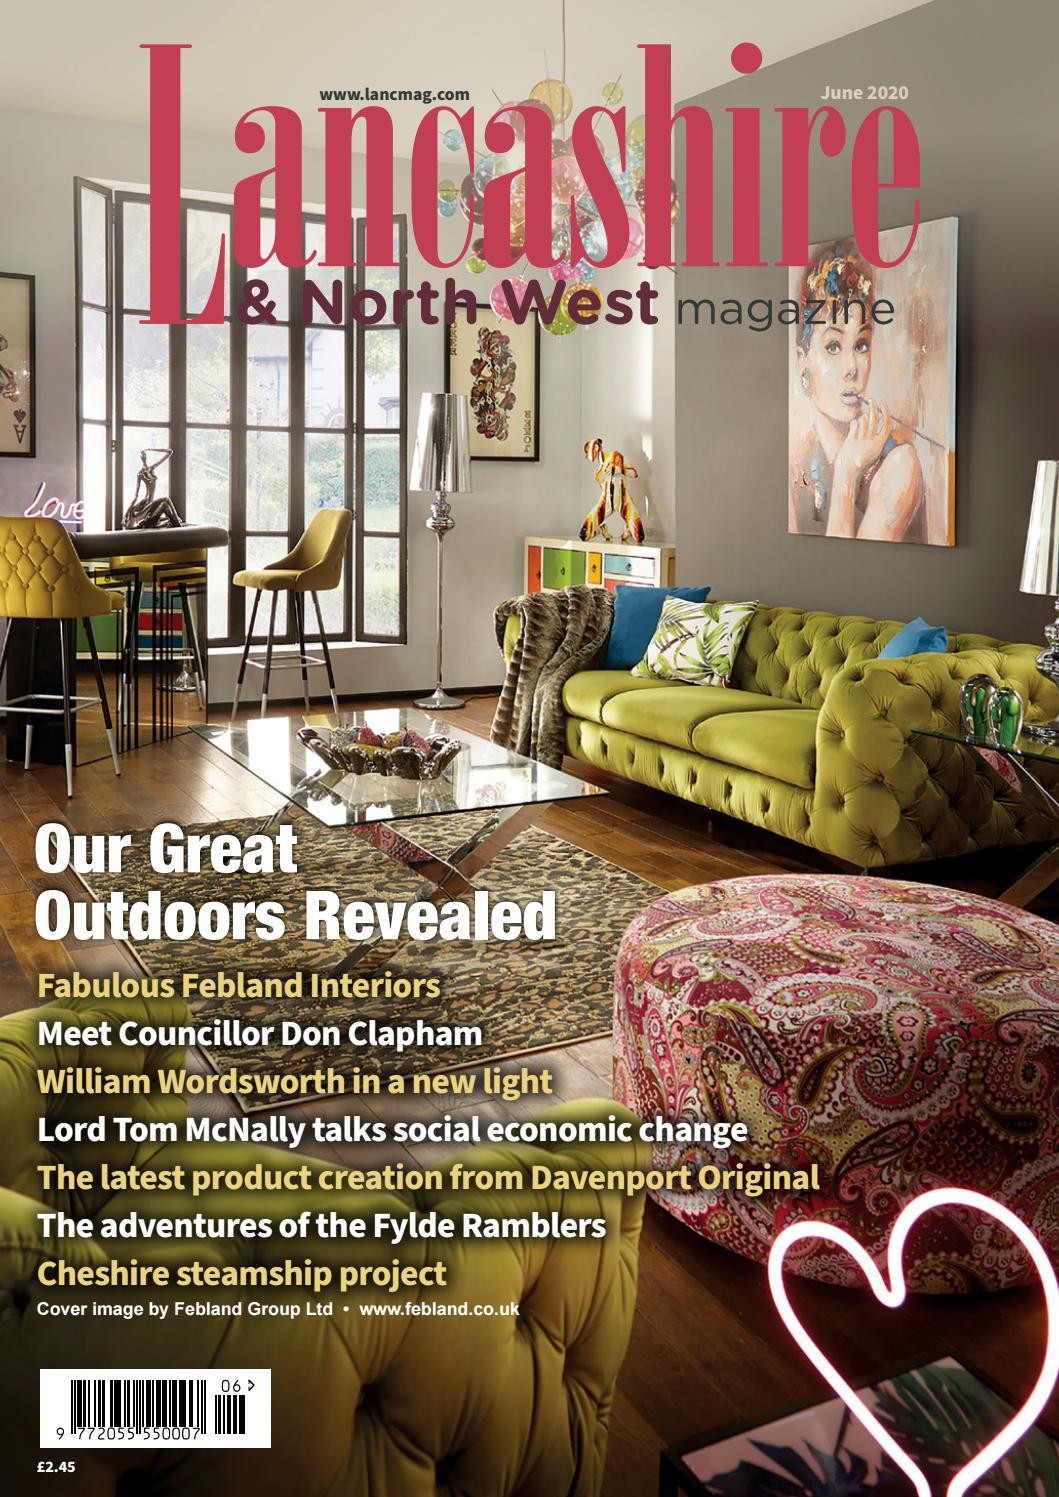 The Lancashire Northwest Magazine June 2020 By The Lancashire Magazine Issuu